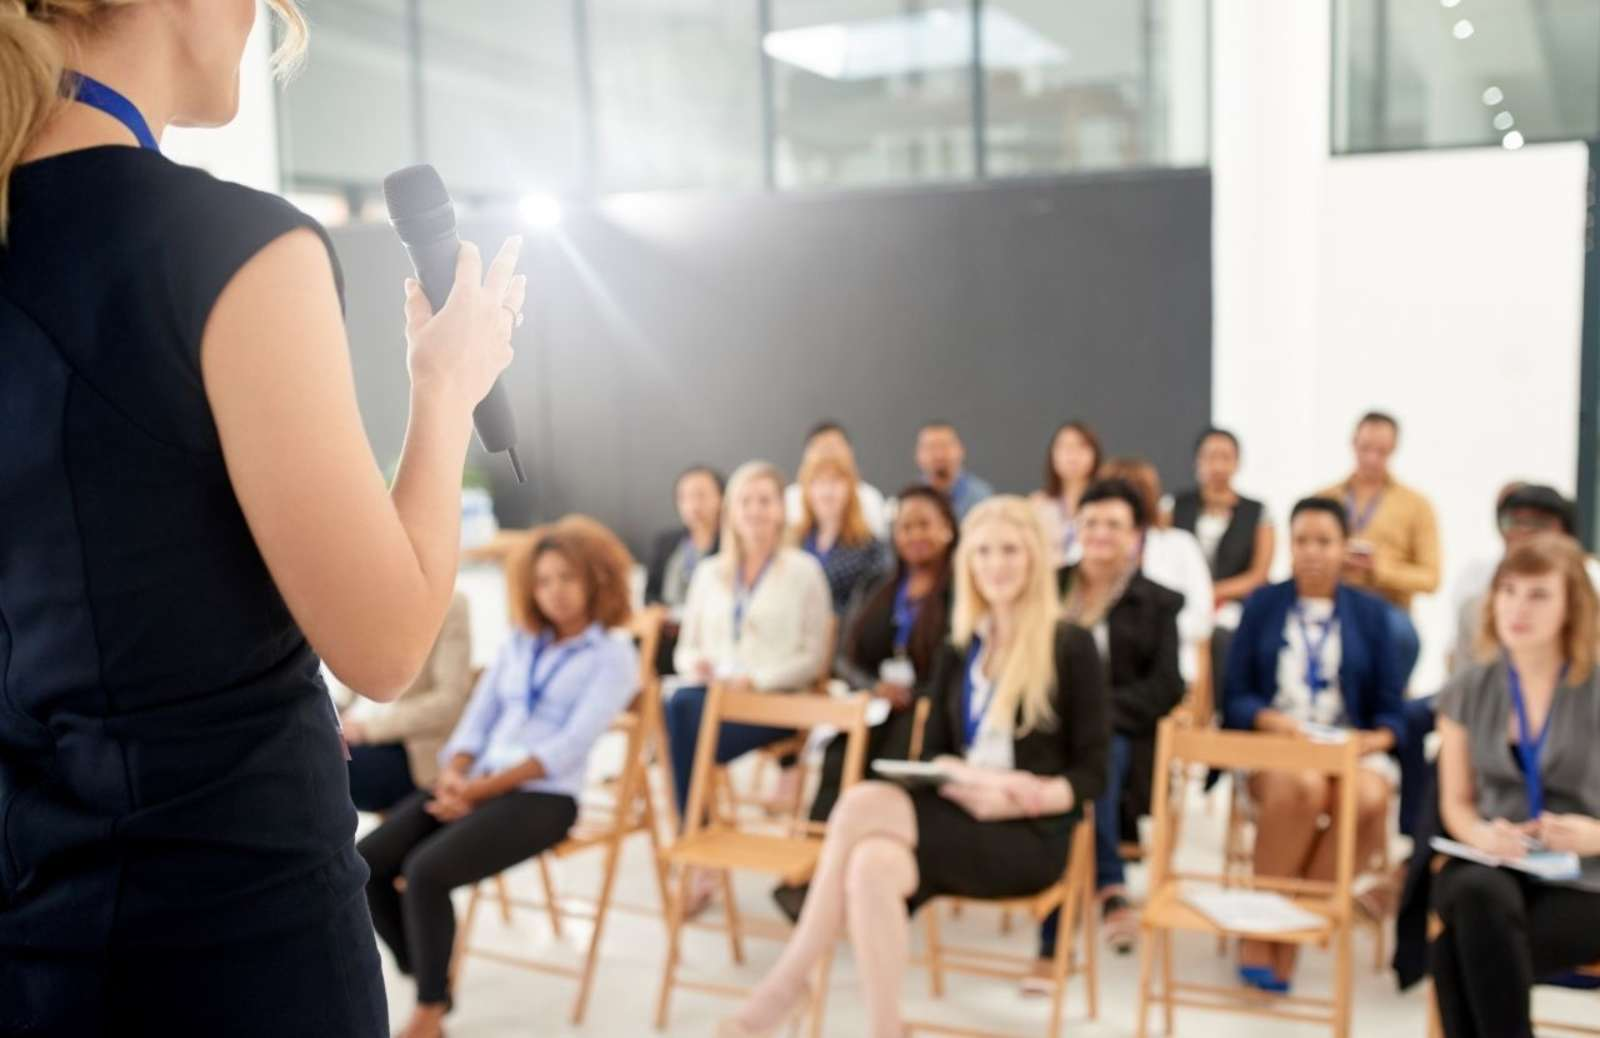 Woman teaching class full of adult students at desks